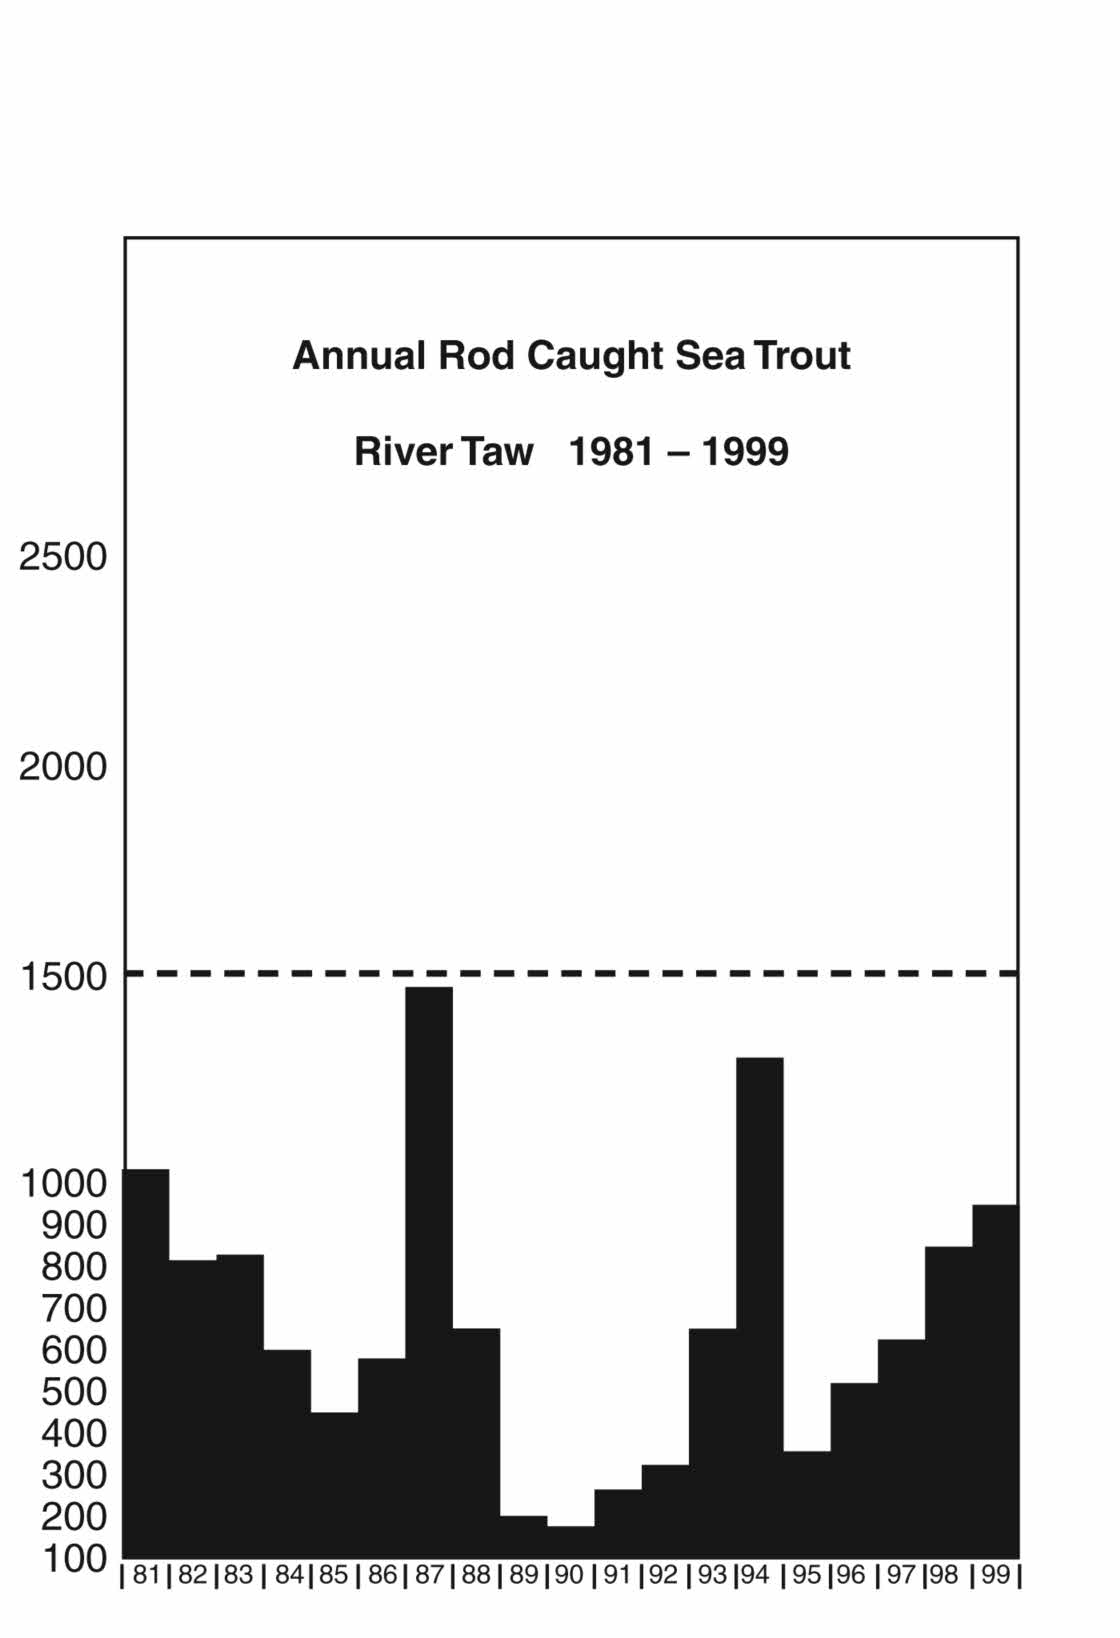 Annual Rod Caught Sea Trout - River Taw - 1981 to 1999